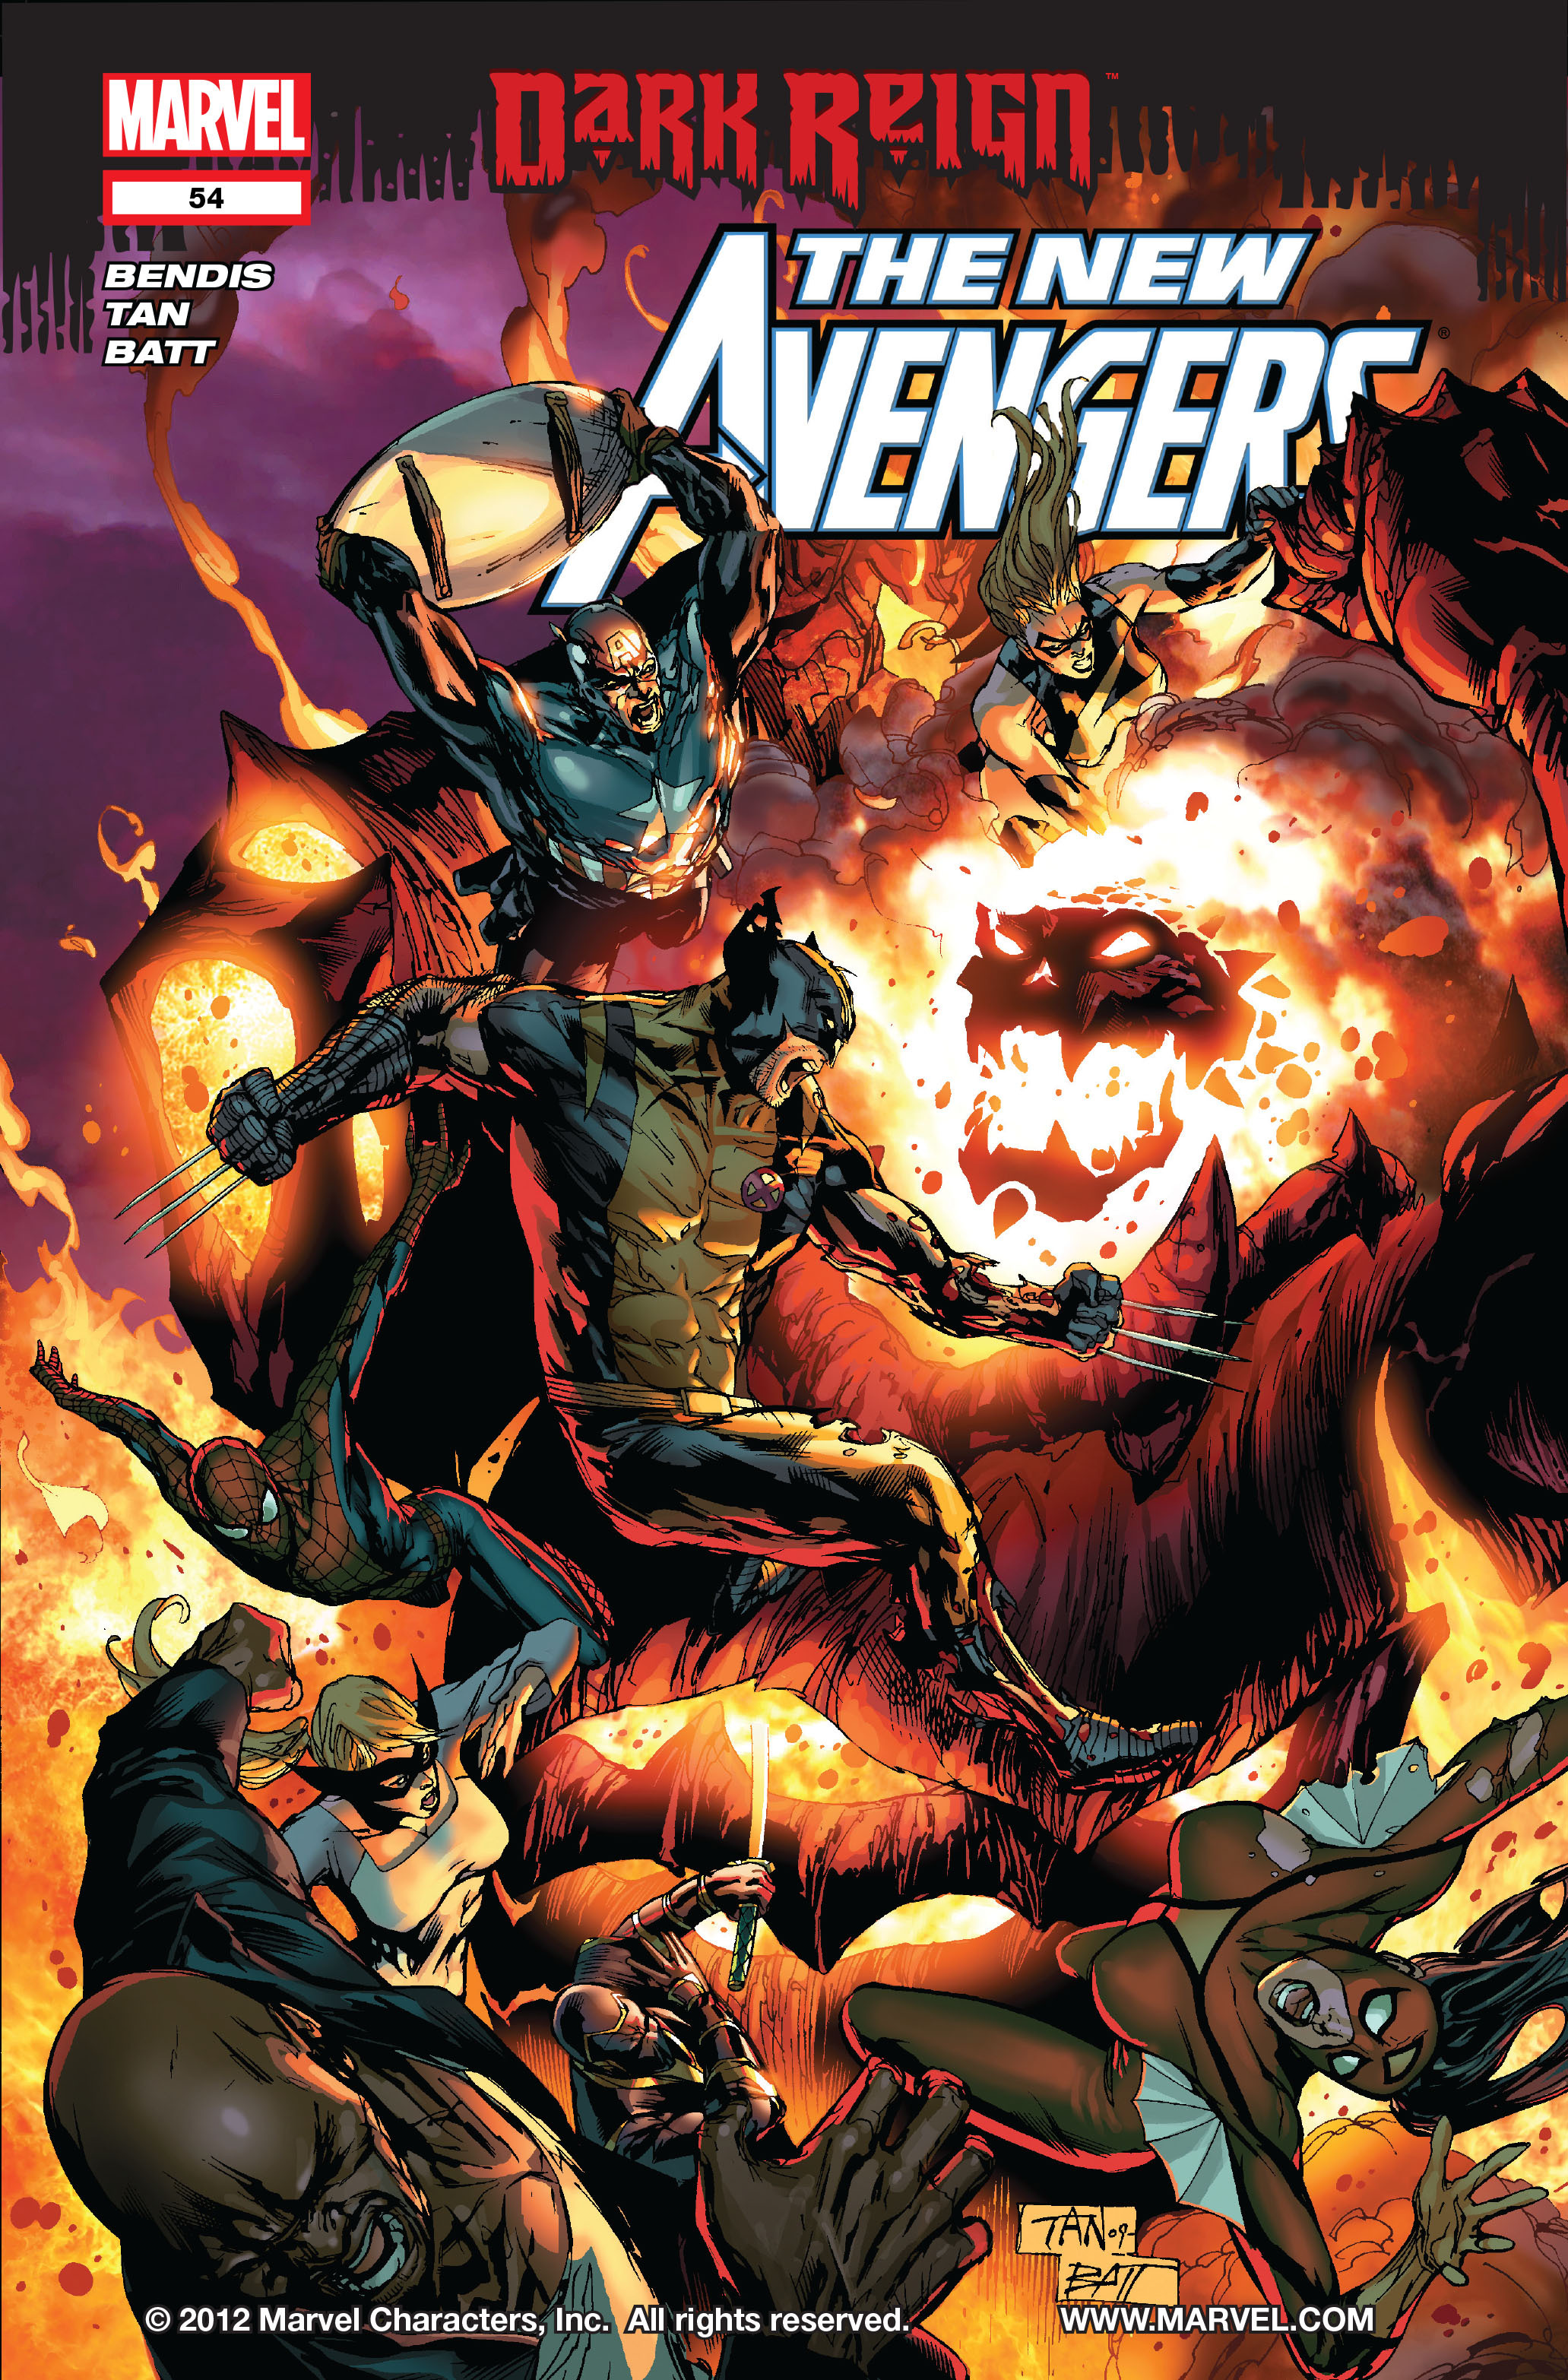 New Avengers (2005) issue 54 - Page 1